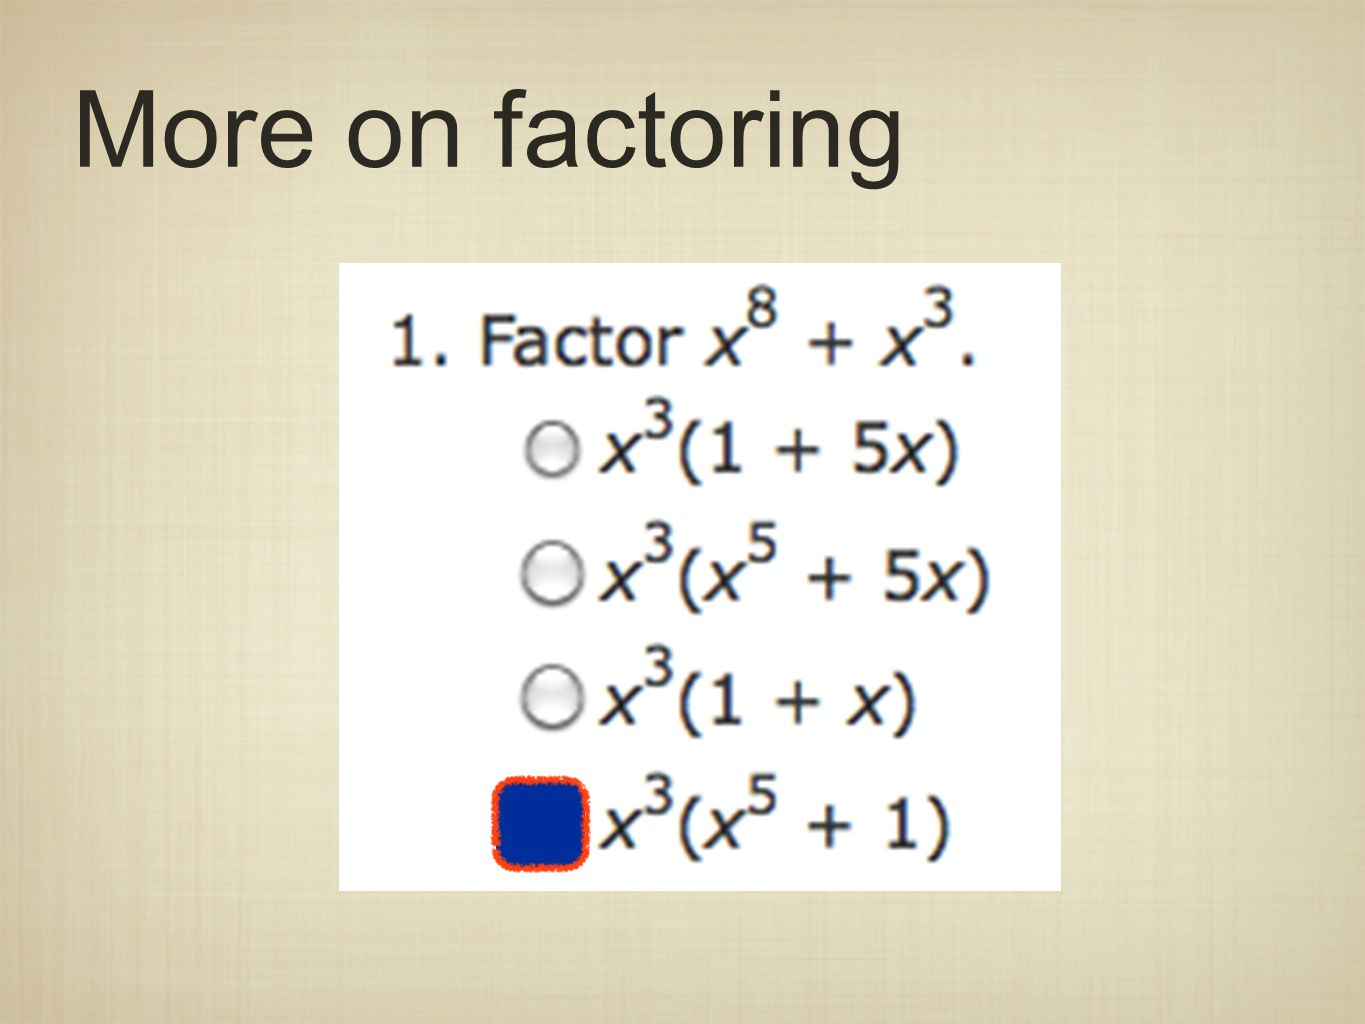 More on factoring